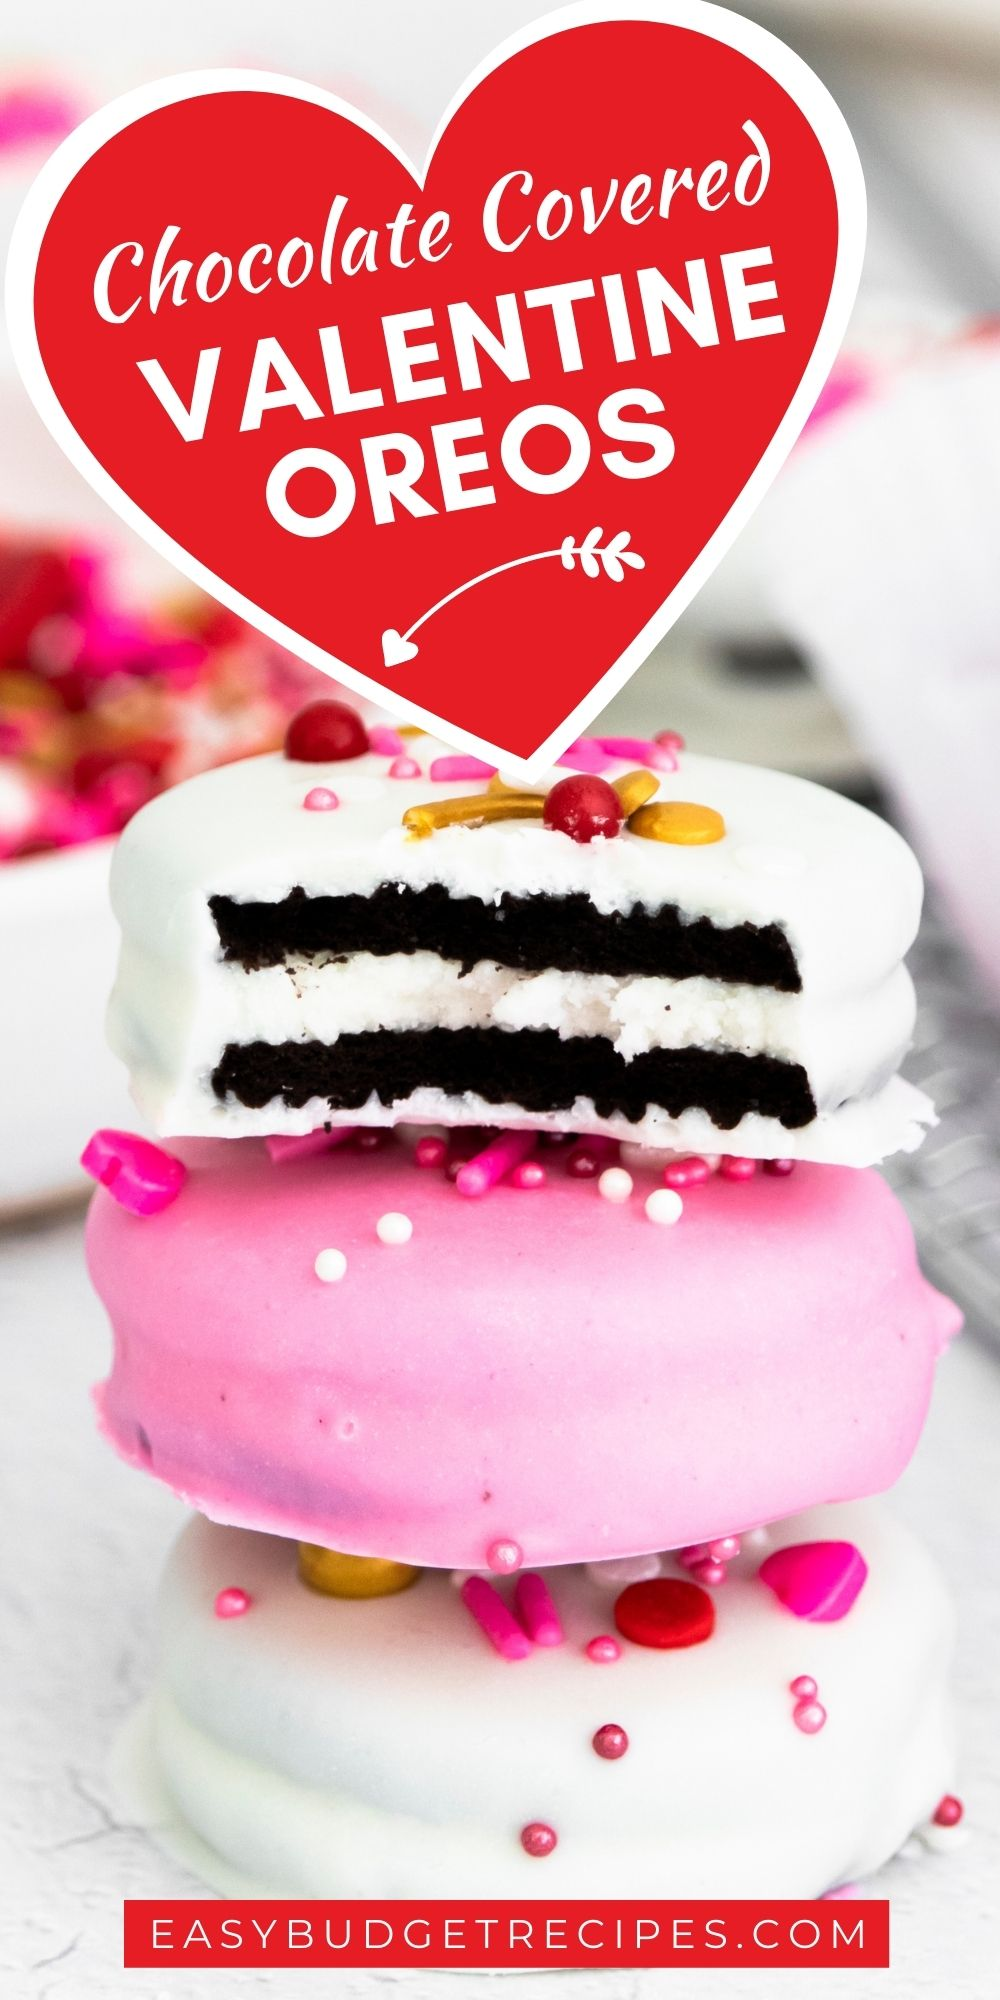 These White Chocolate Dipped Oreos are all dressed up for Valentine's Day. They're easy to make and customizable for any holiday or celebration. via @easybudgetrecipes